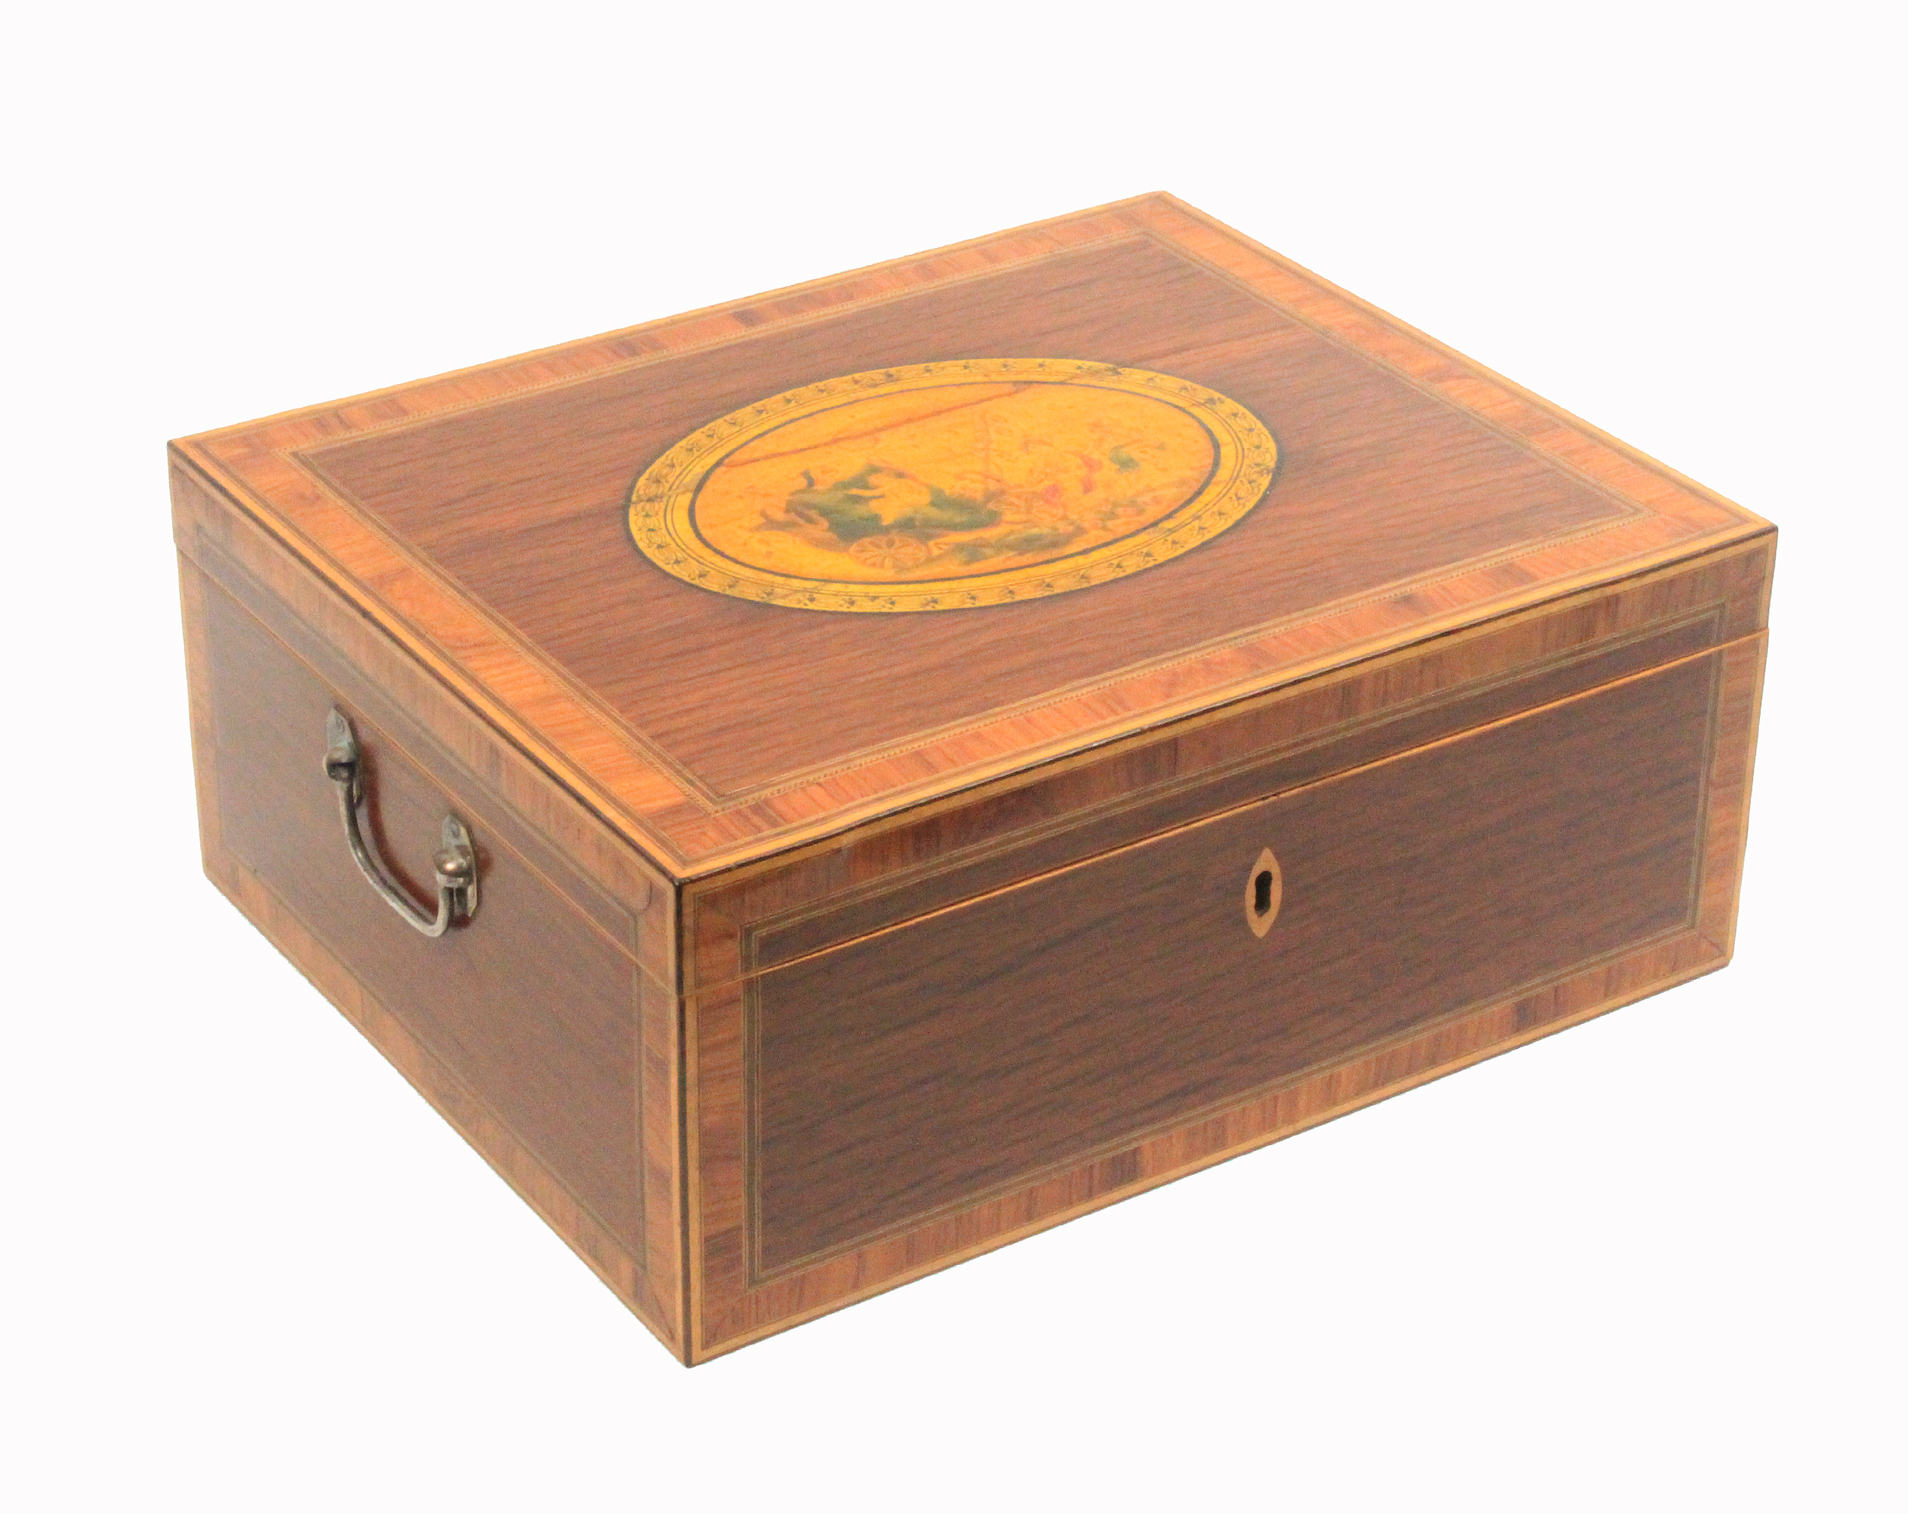 Lot 31 - An early 19th century Tunbridge print decorated documentary sewing box of rectangular form